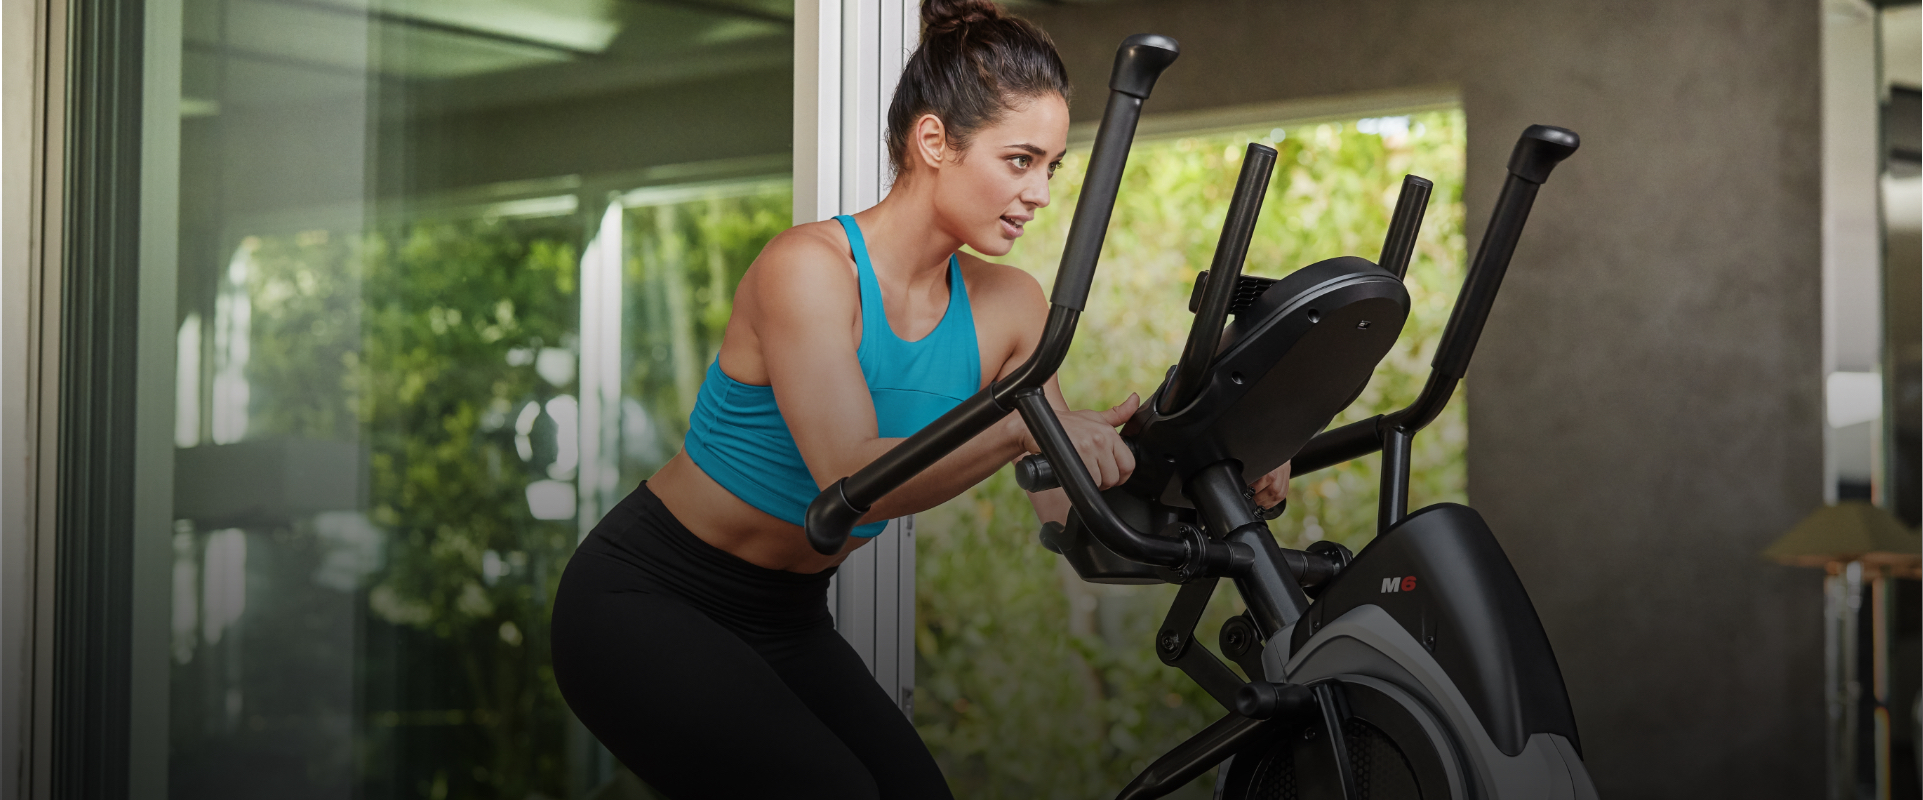 woman walking on a Max Trainer cardio machine